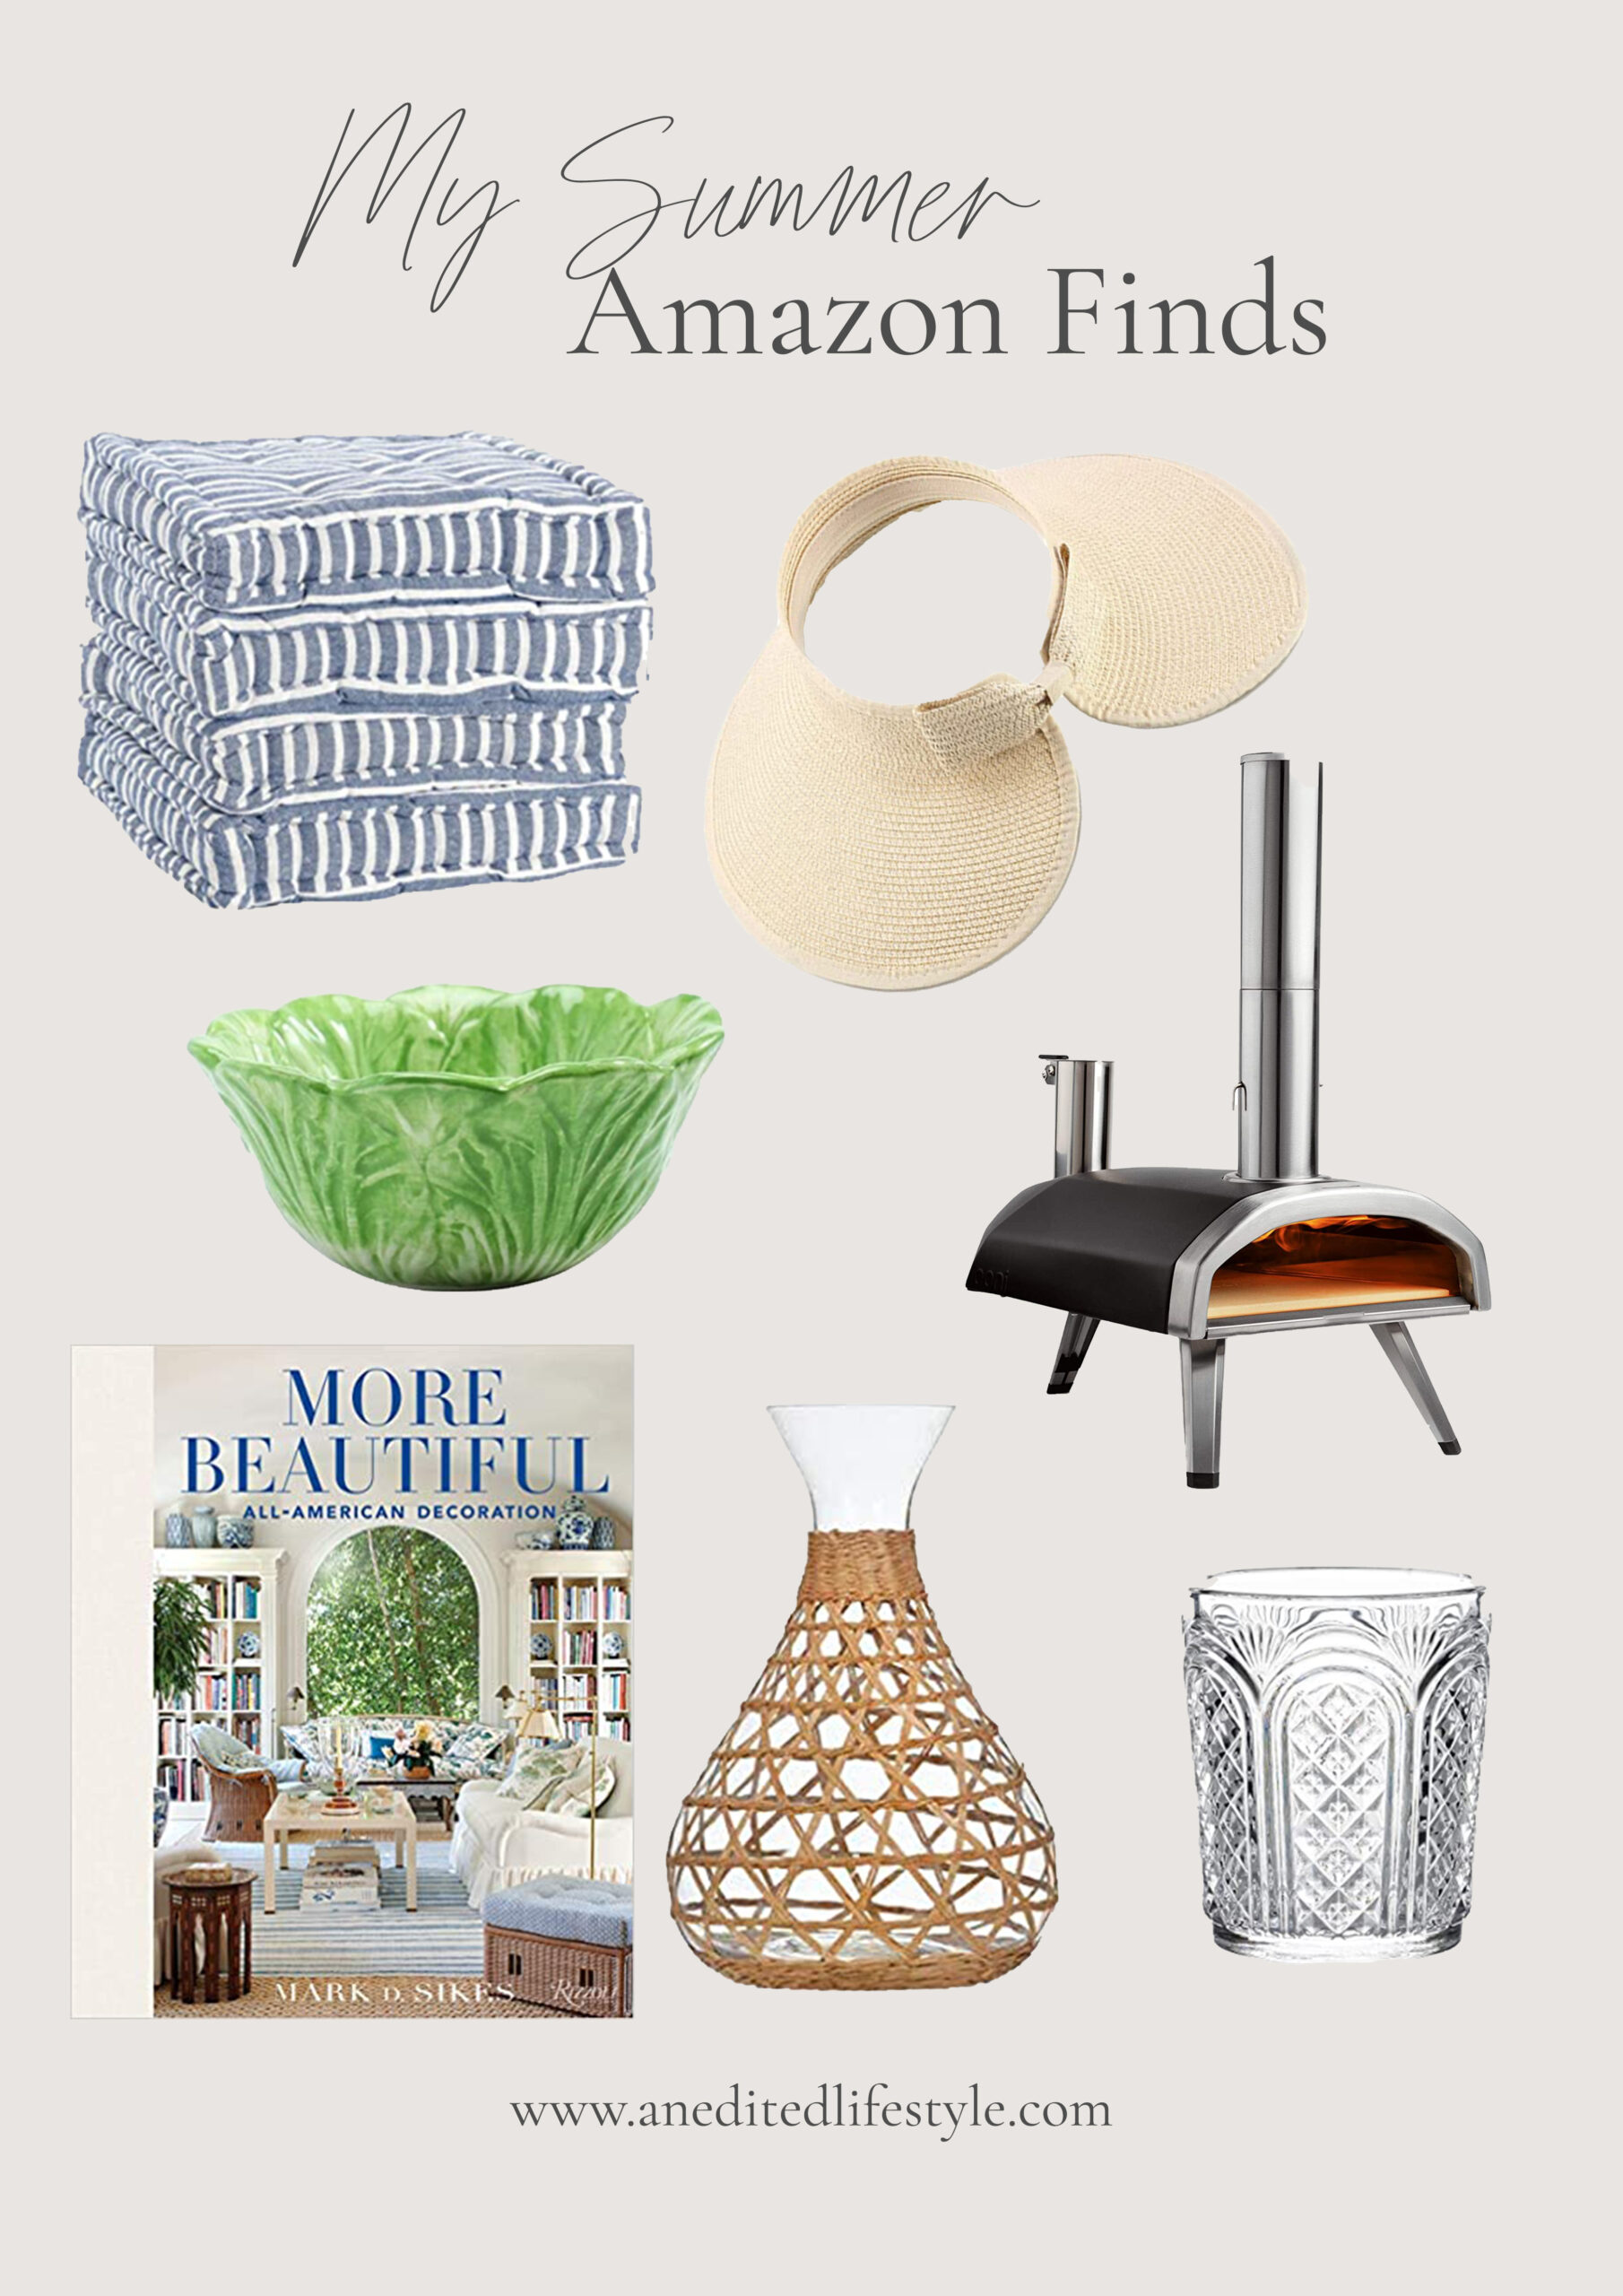 an edited lifestyle summer amazon finds